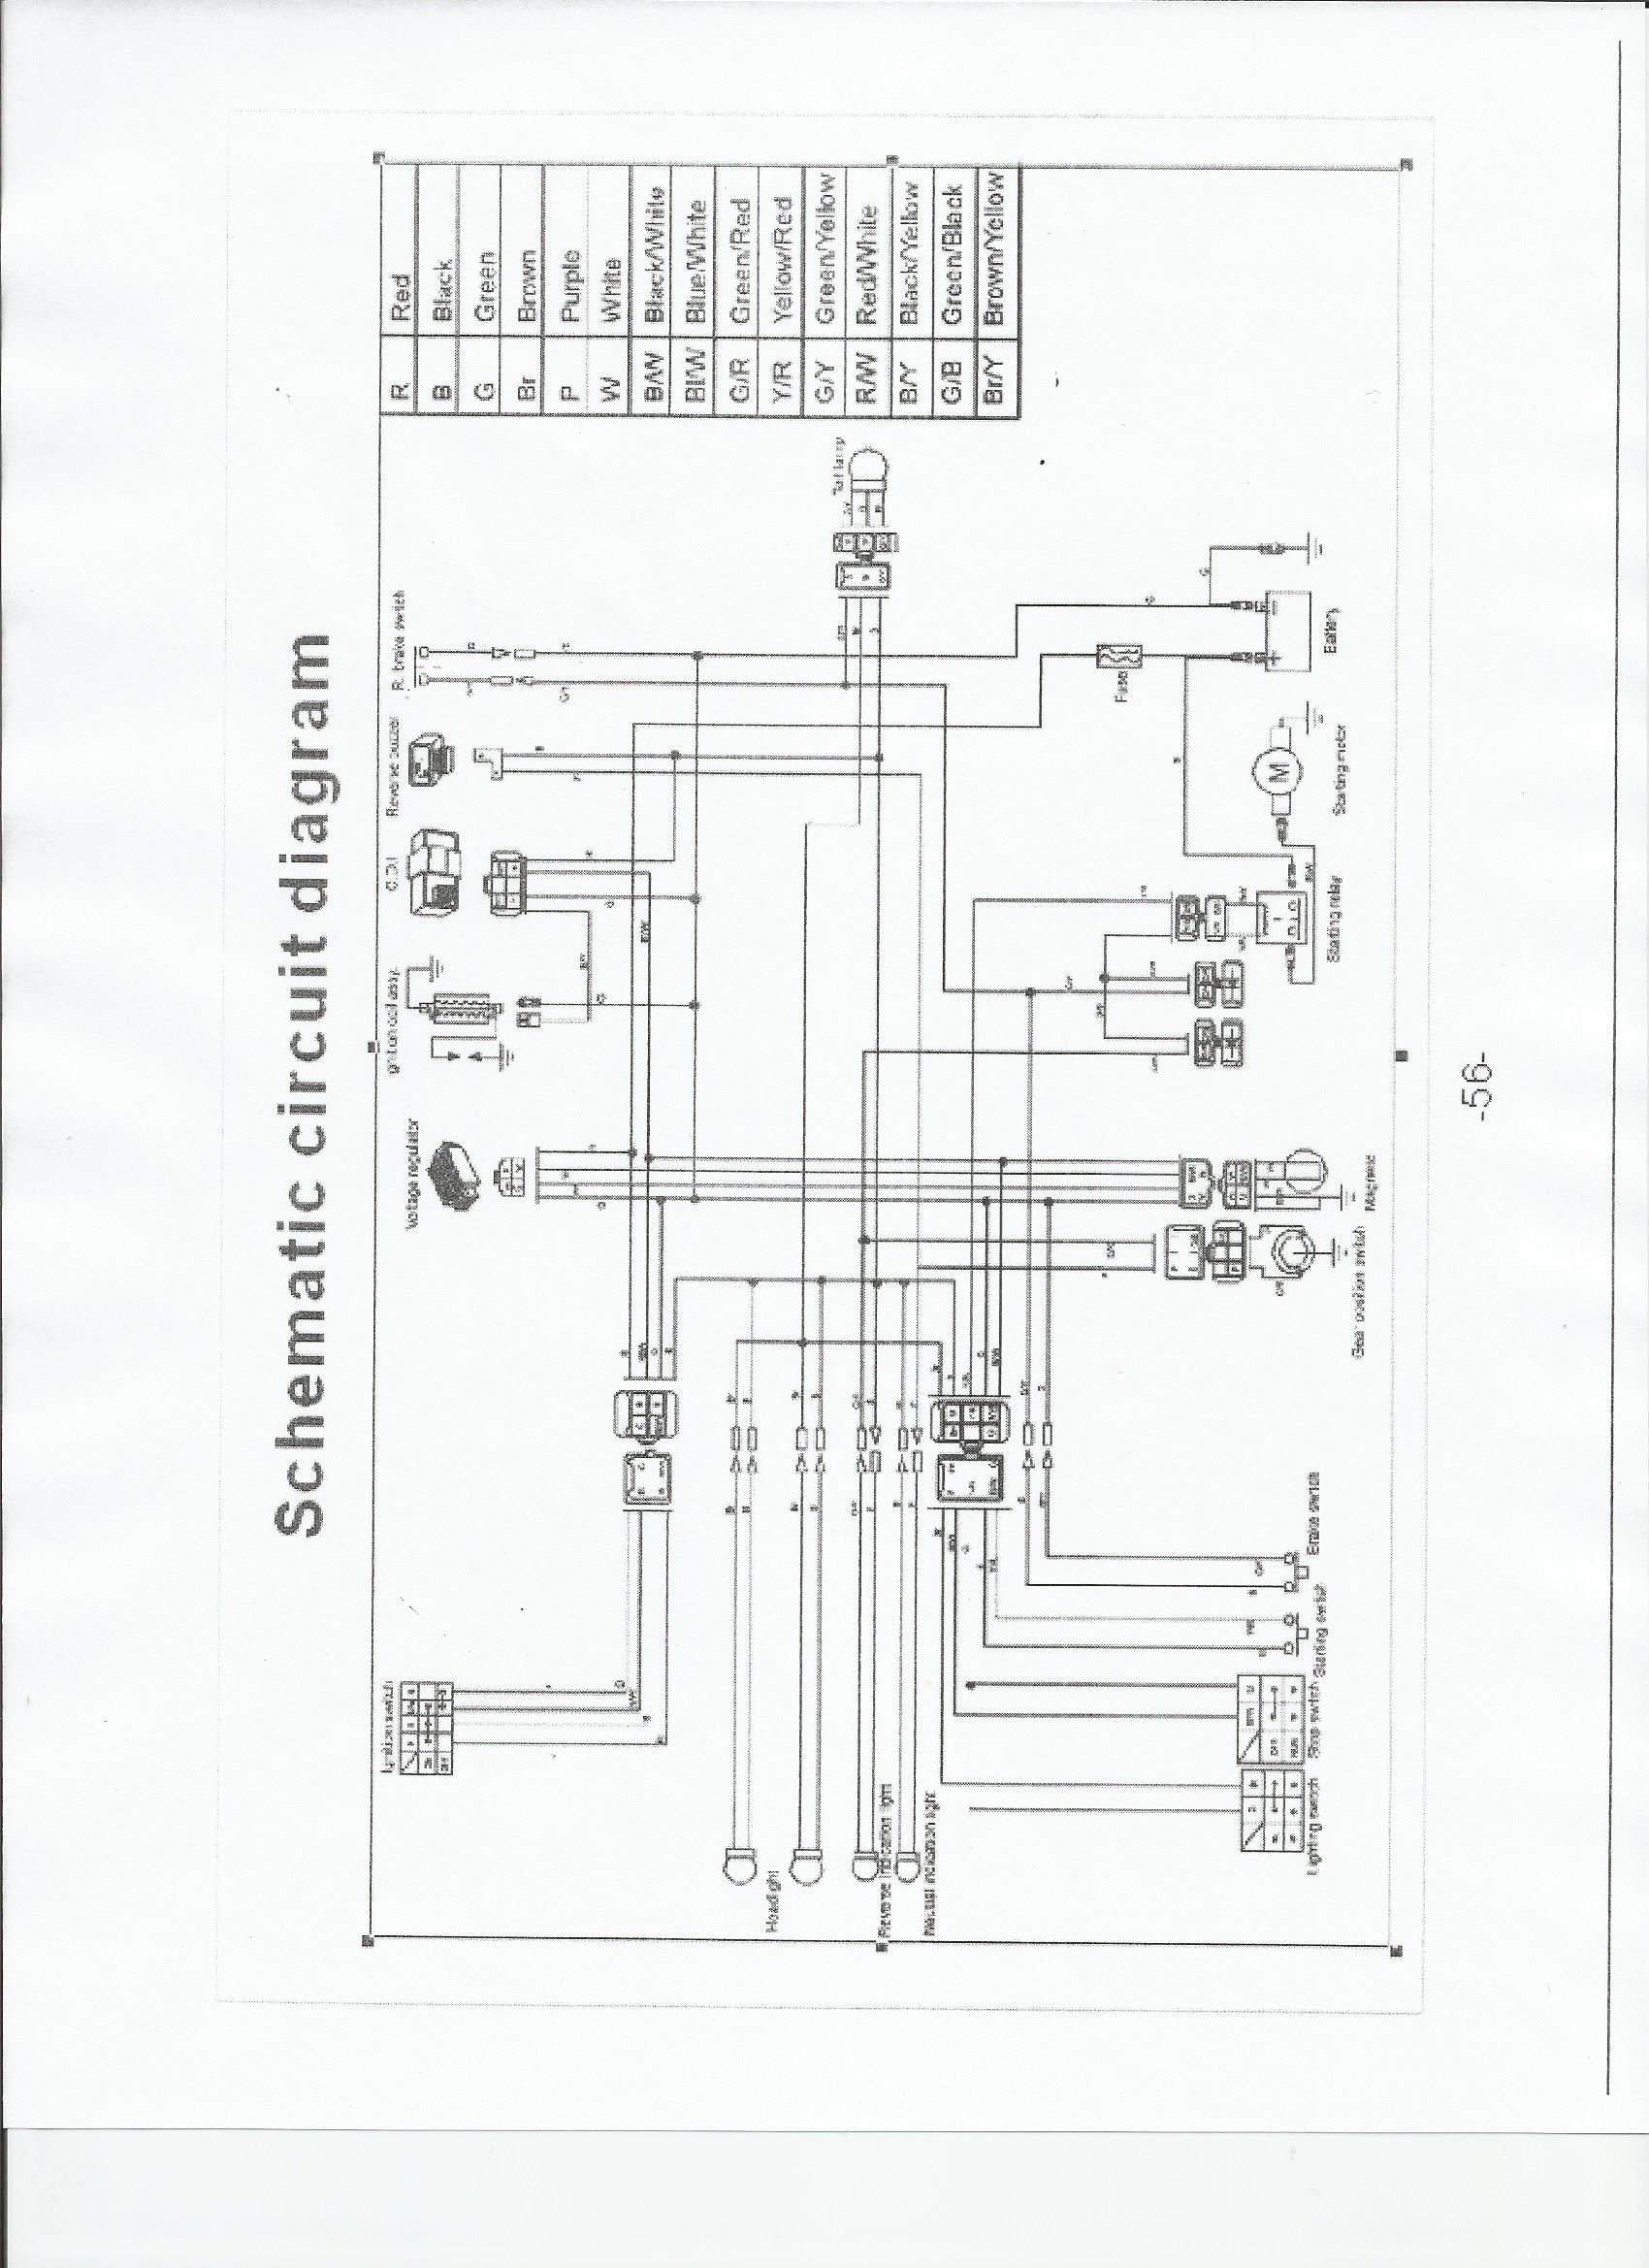 tao tao wiring schematic taotao mini and youth atv wiring schematic familygokarts support taotao ata 125d wiring diagram at bayanpartner.co